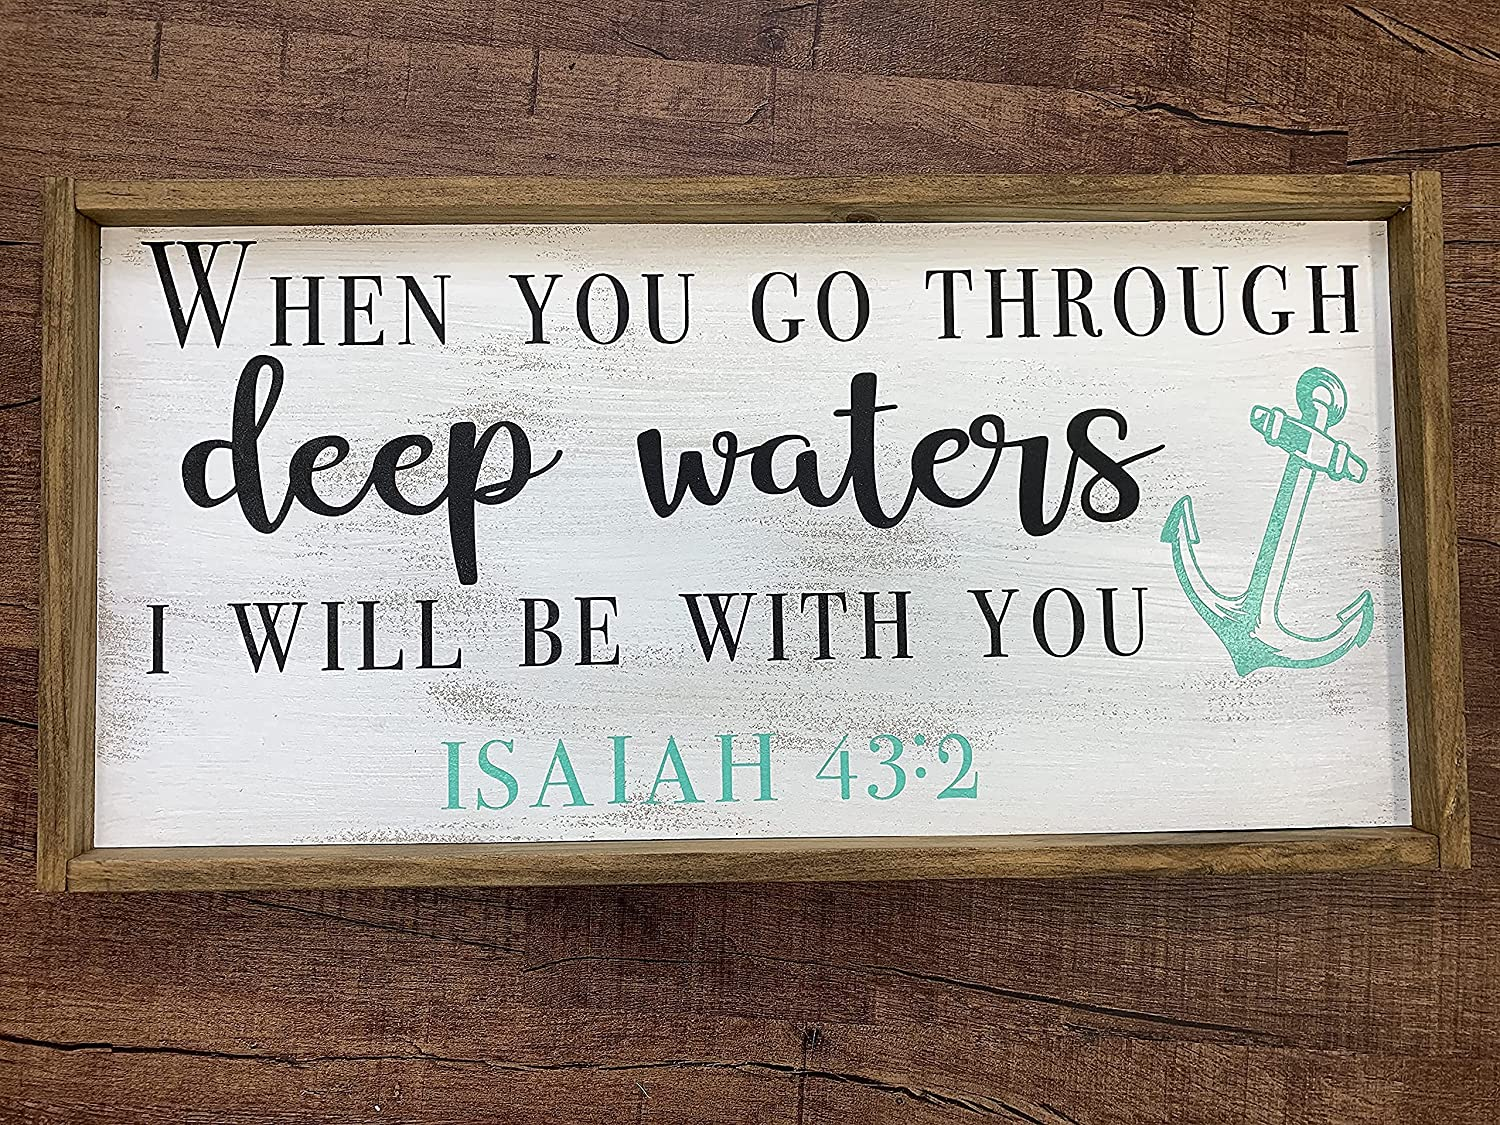 Deep Waters Isaiah 43:2 Bible Verse Turquoise with Excellent Anchor Sign 2021 a